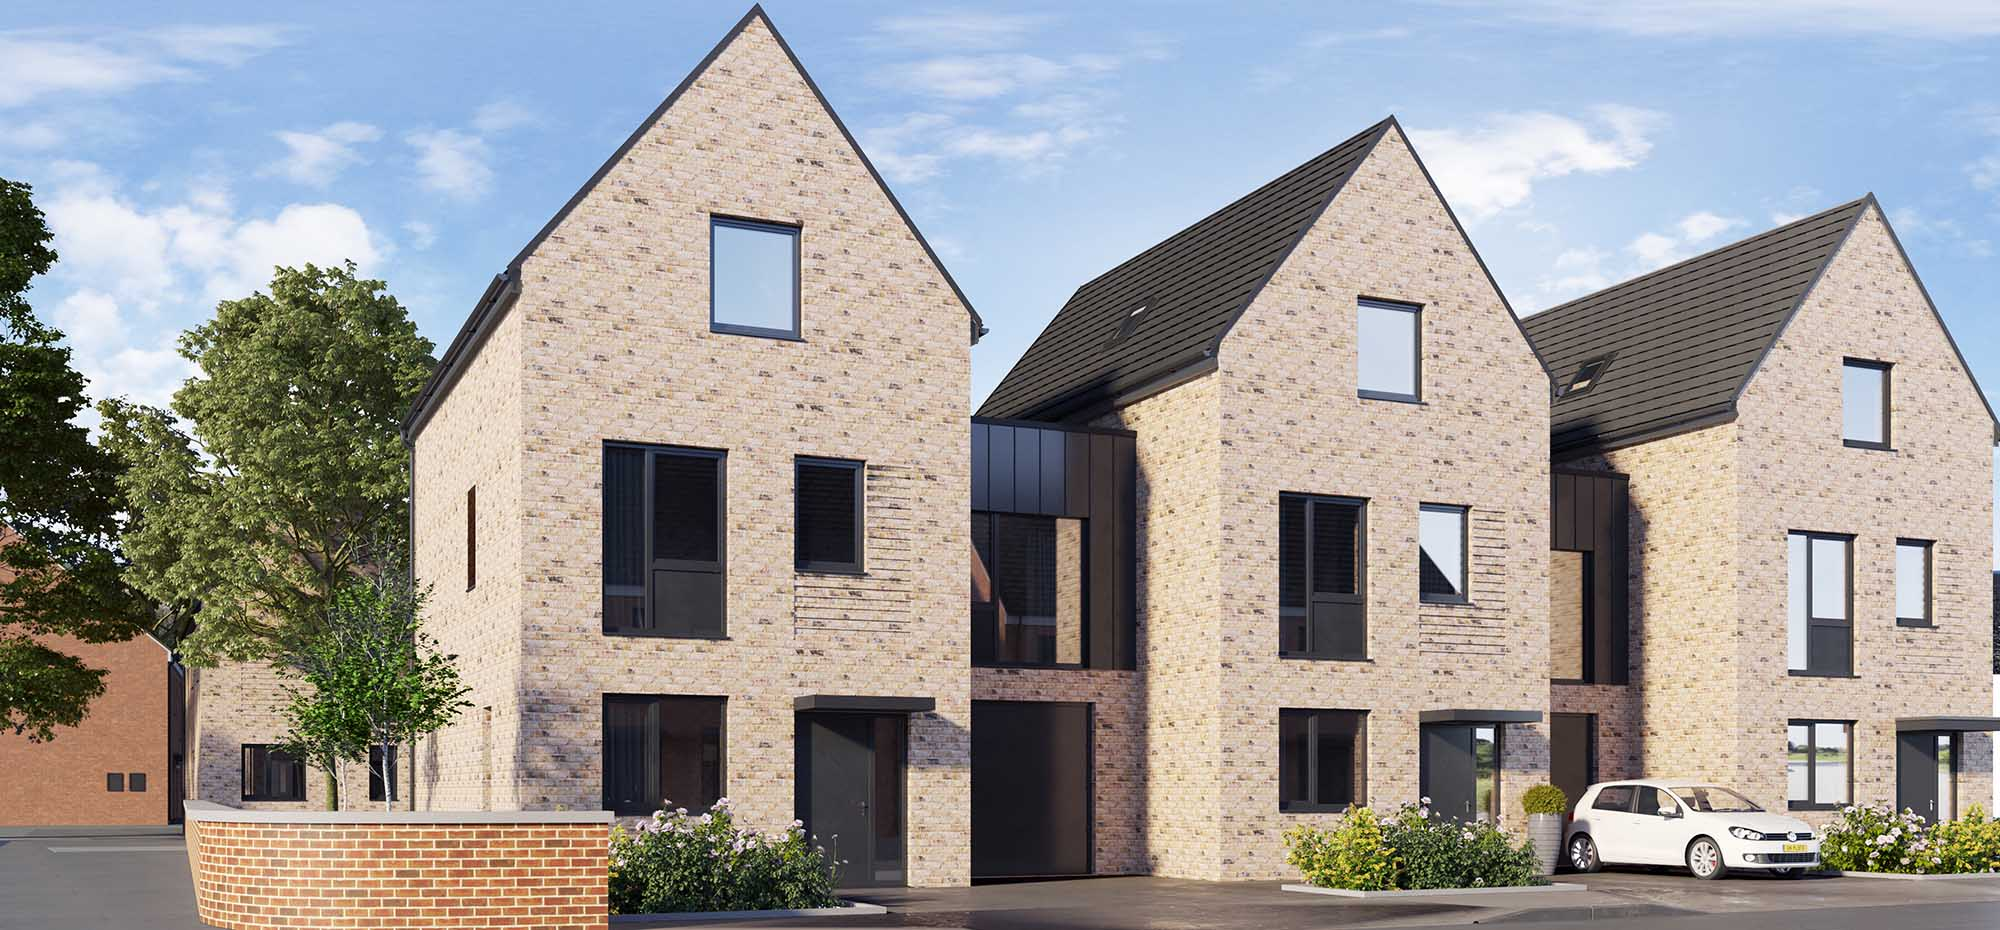 This image shows an external view of the Cowberry four bedroom, end-townhouse from Shape Homes York.